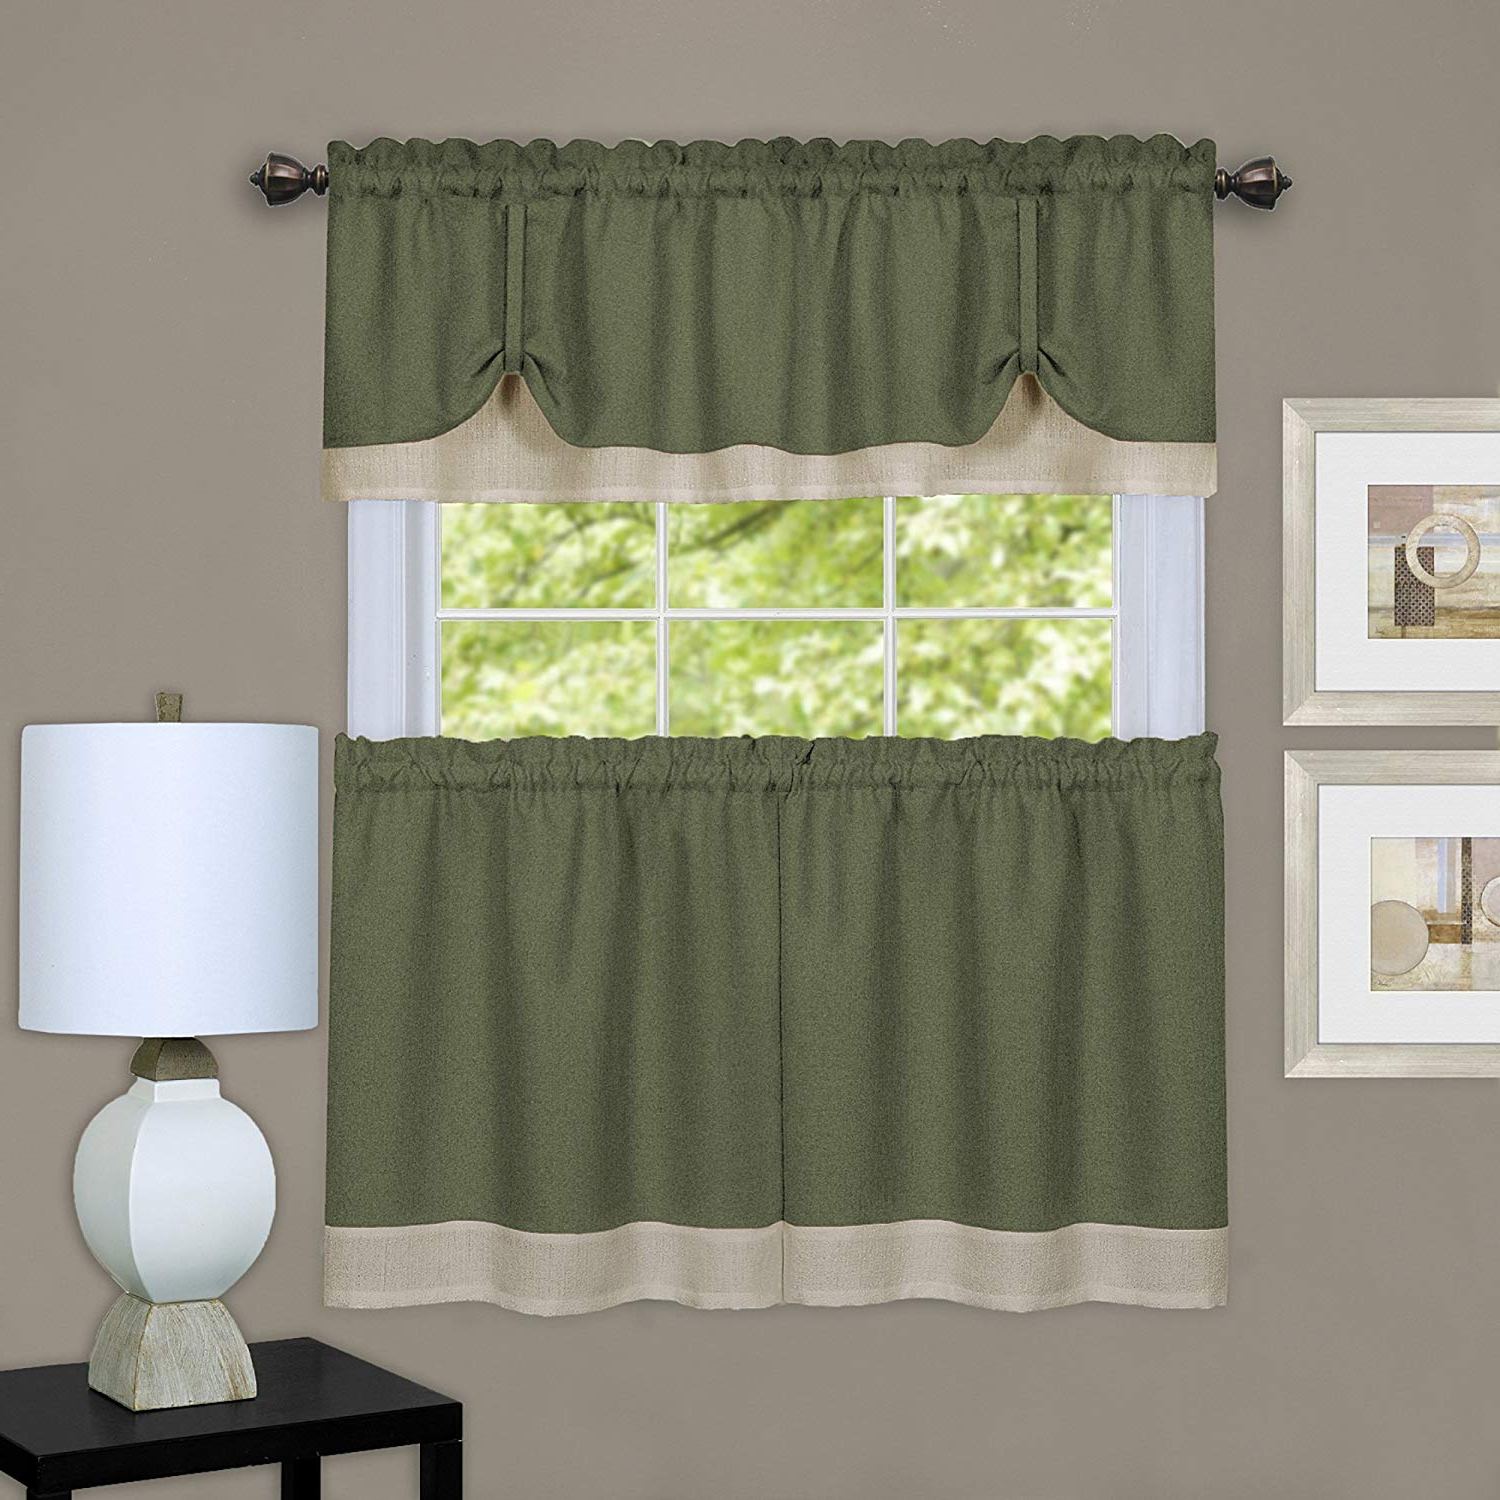 "Forest Valance And Tier Pair Curtains Regarding Famous Achim Home Furnishings Darcy Window Curtain Tier And Valance Set, Green &  Camel, 58"" X 24"" With 14"" Green/camel (Gallery 10 of 20)"